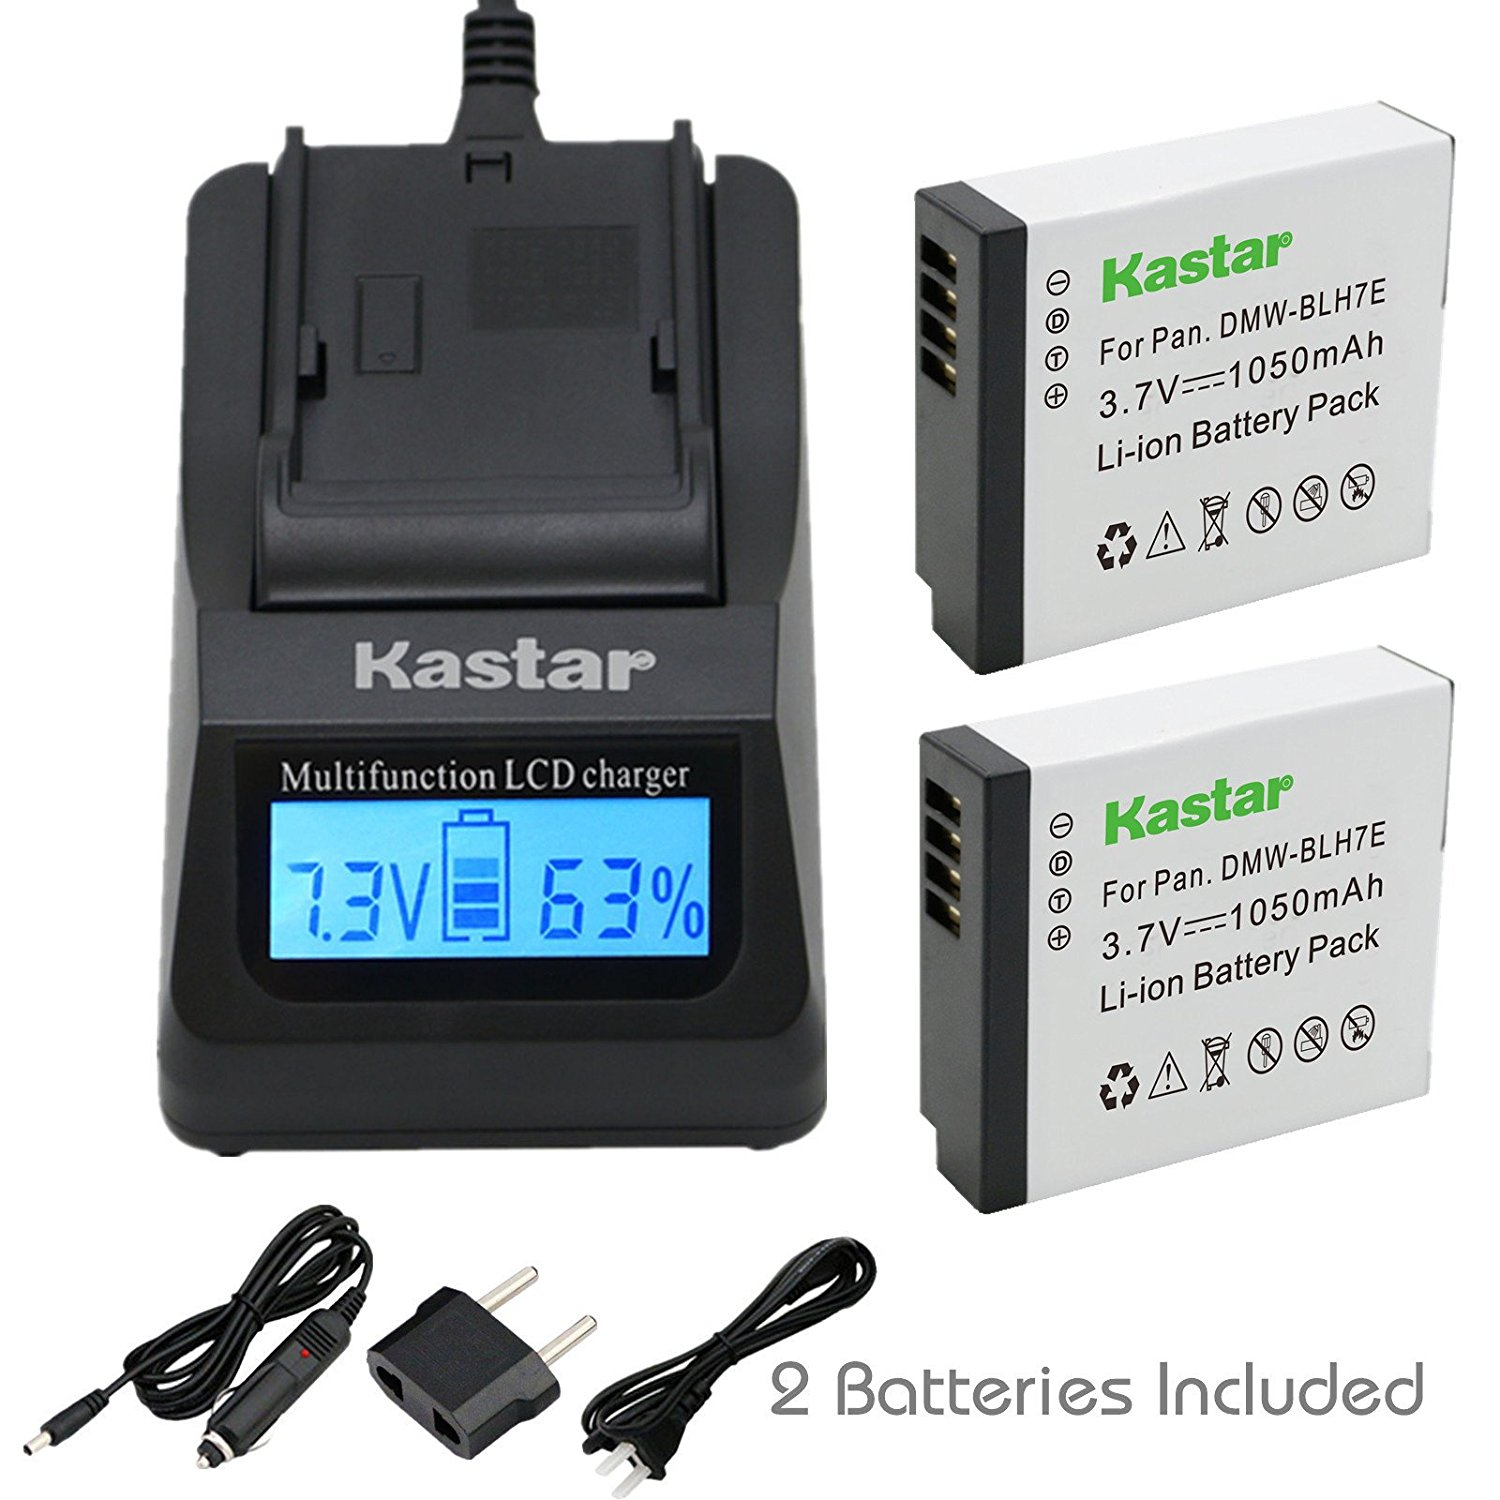 Kastar Ultra Fast Charger(3X faster) Kit and Battery (2-Pack) for Panasonic DMW-BLH7 DMW-BLH7E DMW-BLH7PP work with Panasonic Lumix DMC-GM1 DMC-GM1K DMC-GM5 DMC-GF7 Cameras [Over 3x faster than a normal charger with portable USB charge function]